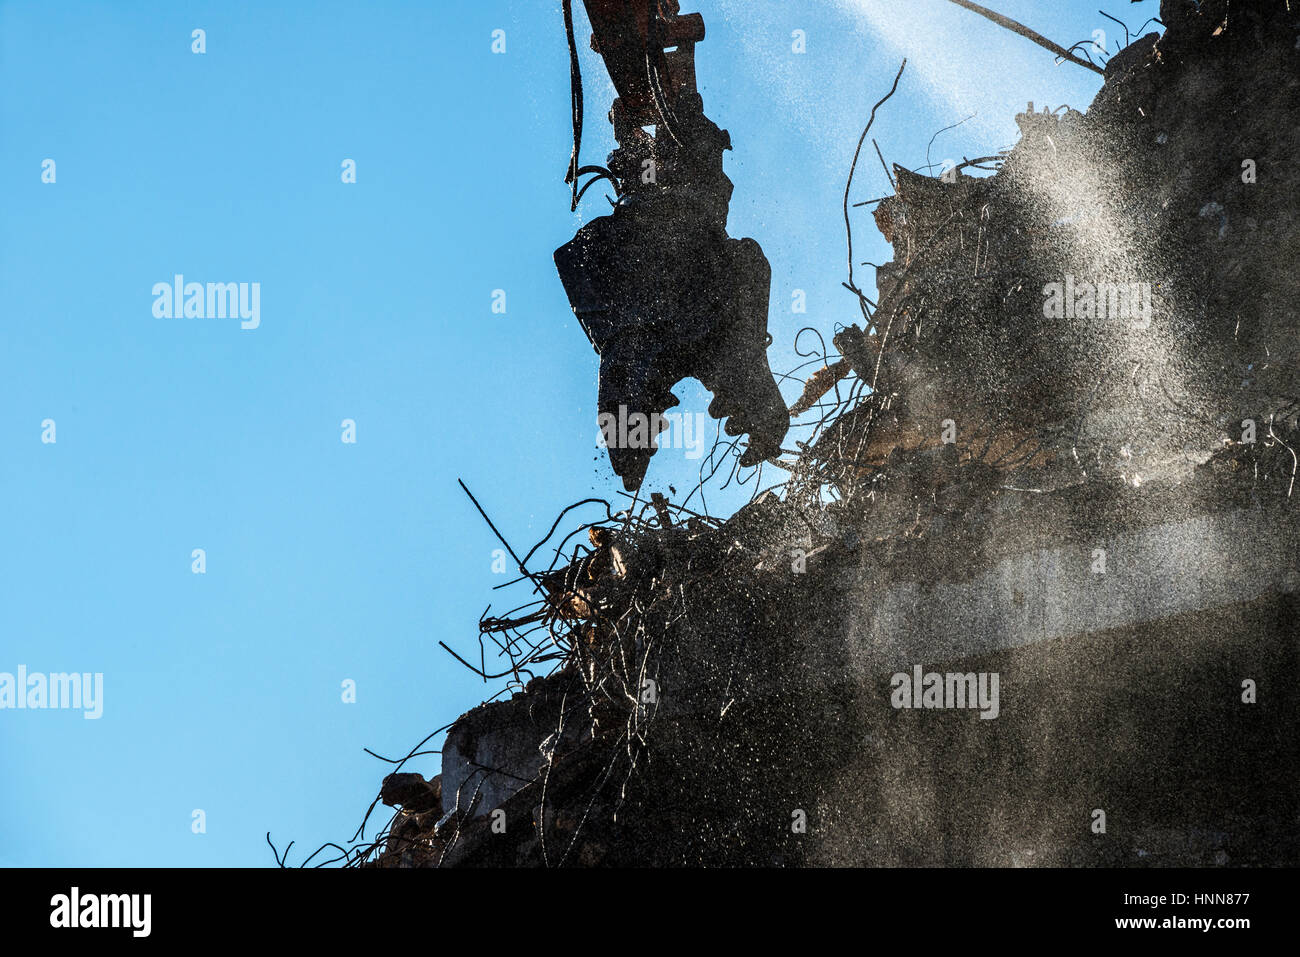 Jaws of High Reach Excavator Tearing Down Building - Stock Image